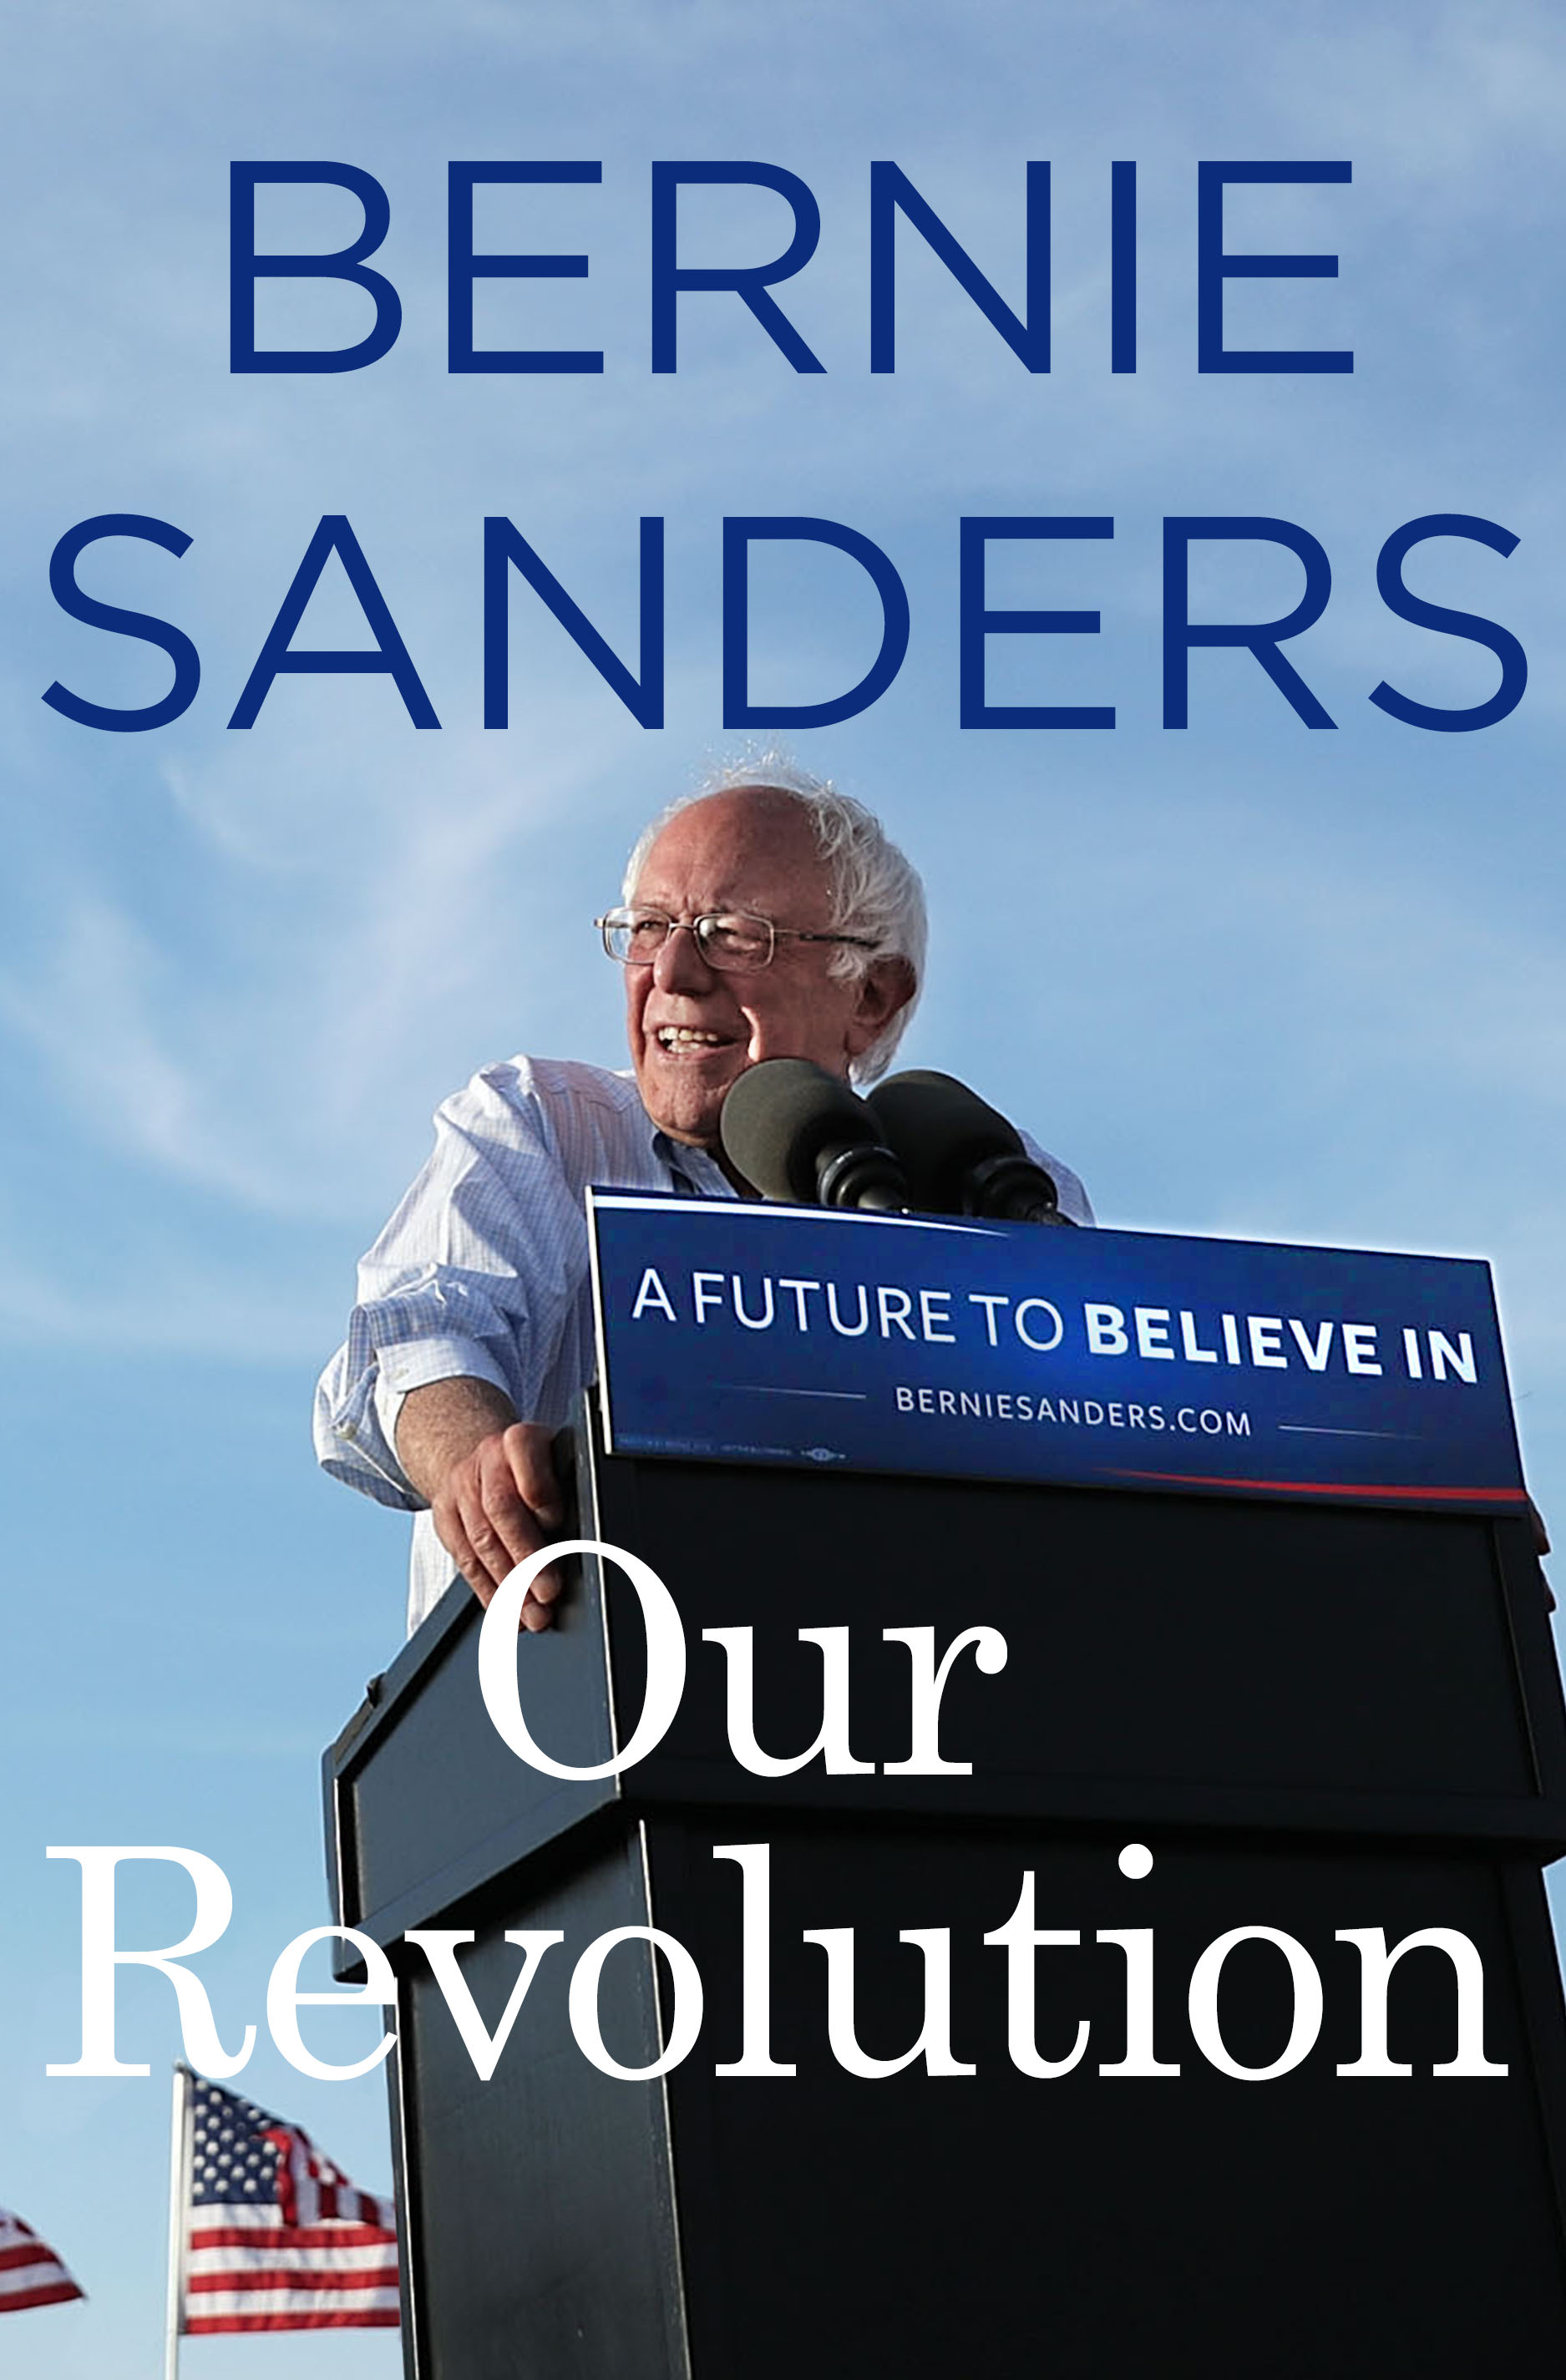 Bernie sanders new book our revolution lays out his sweeping bernie sanders our revolution book malvernweather Choice Image